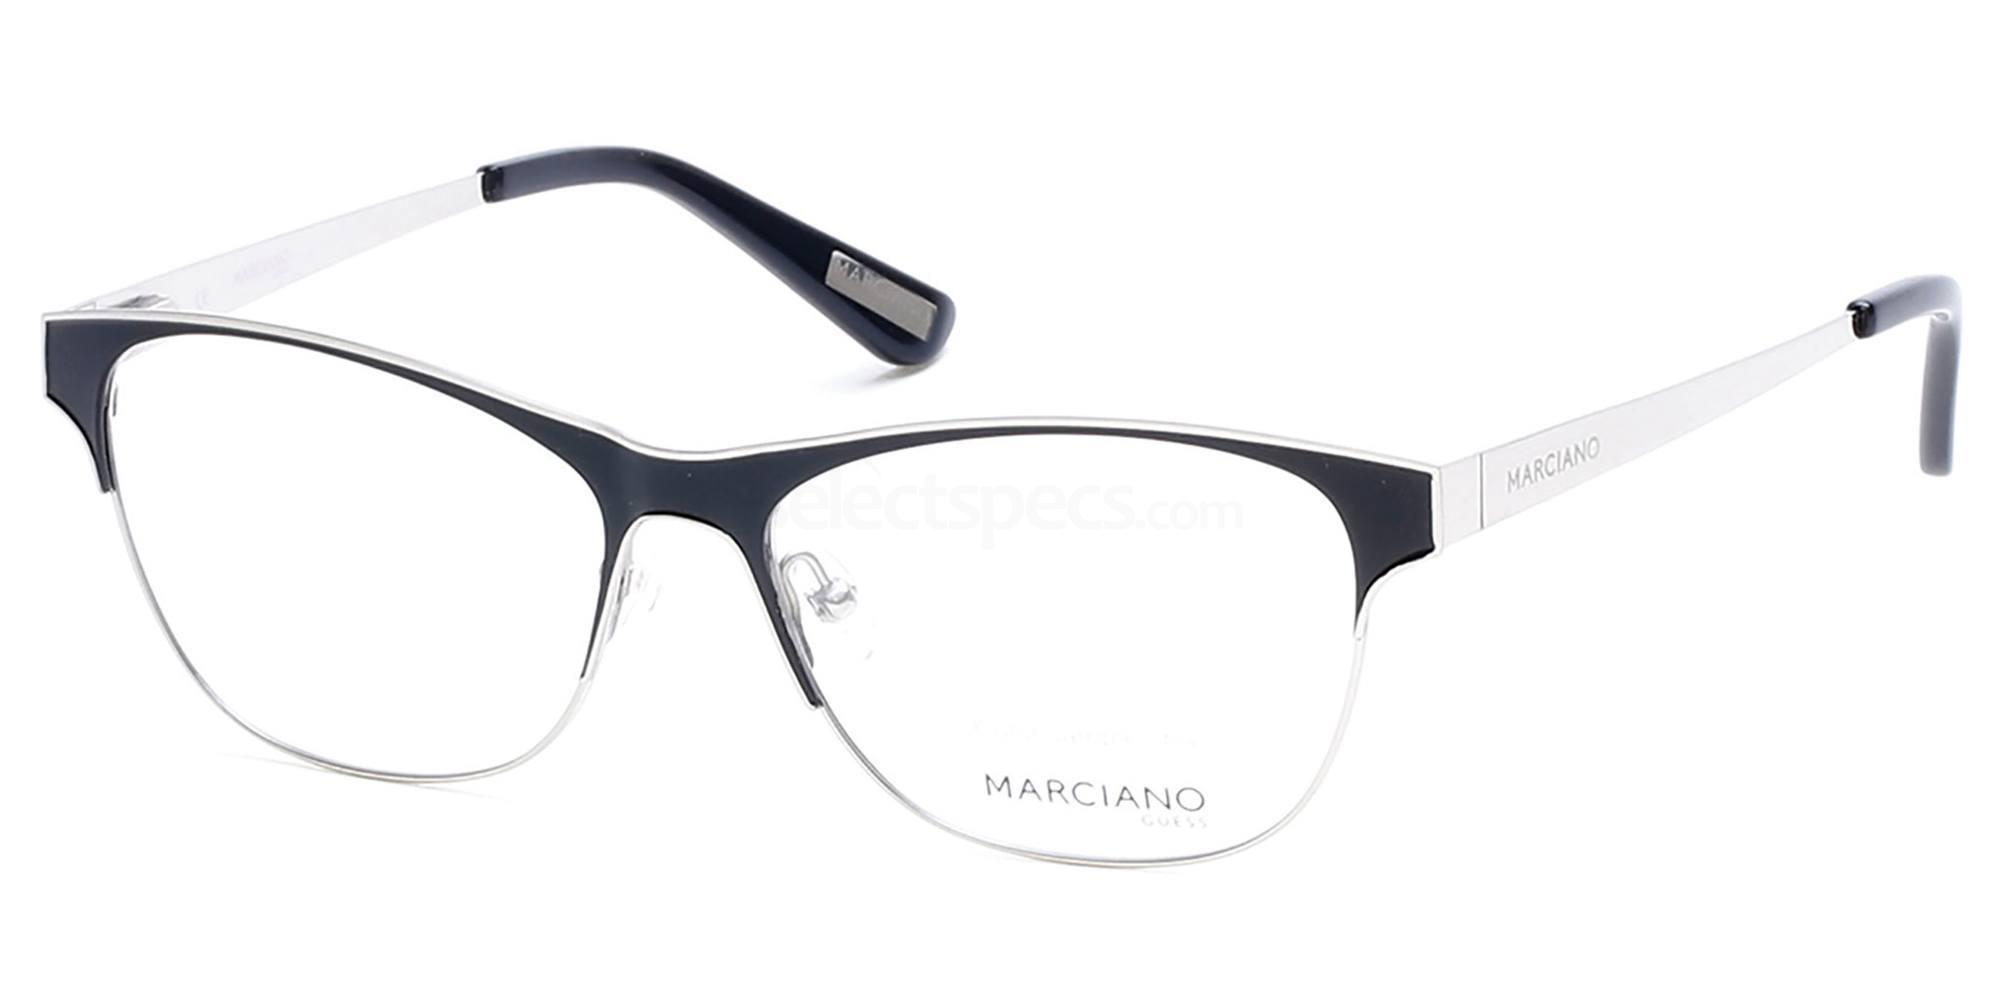 001 GM0278 Glasses, Guess by Marciano